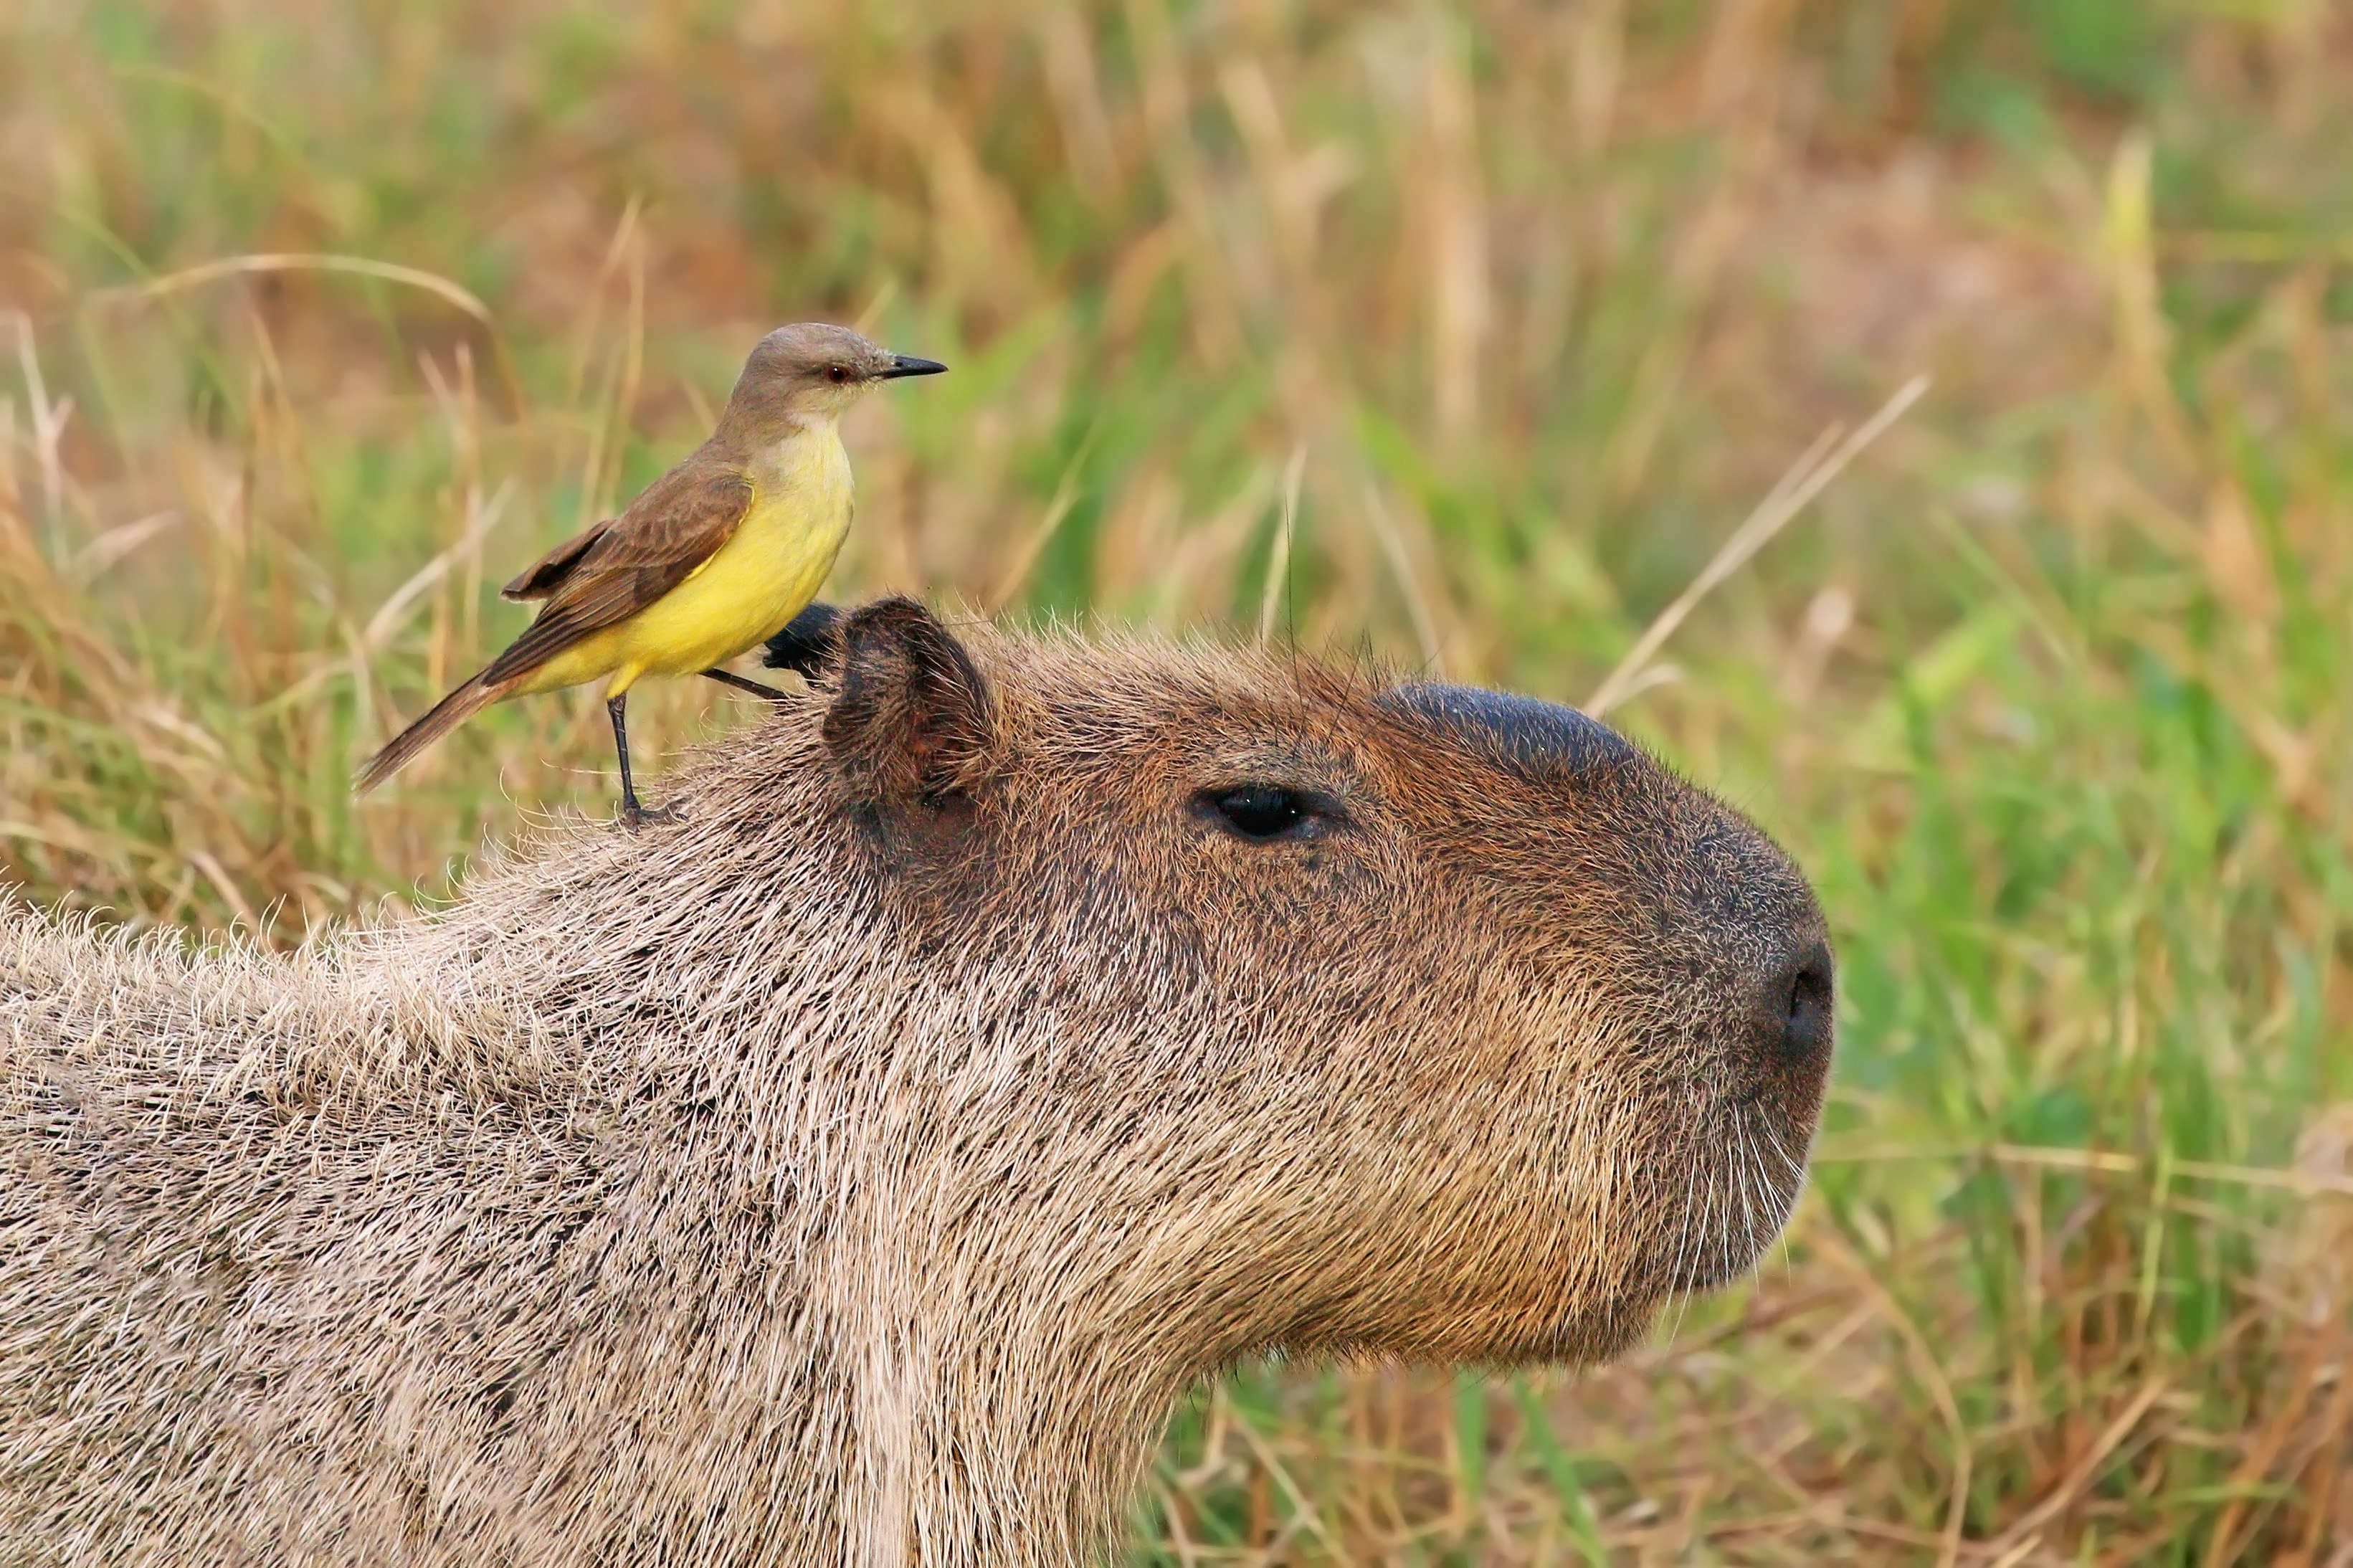 Cattle tyrant (Machetornis rixosa) on capybara